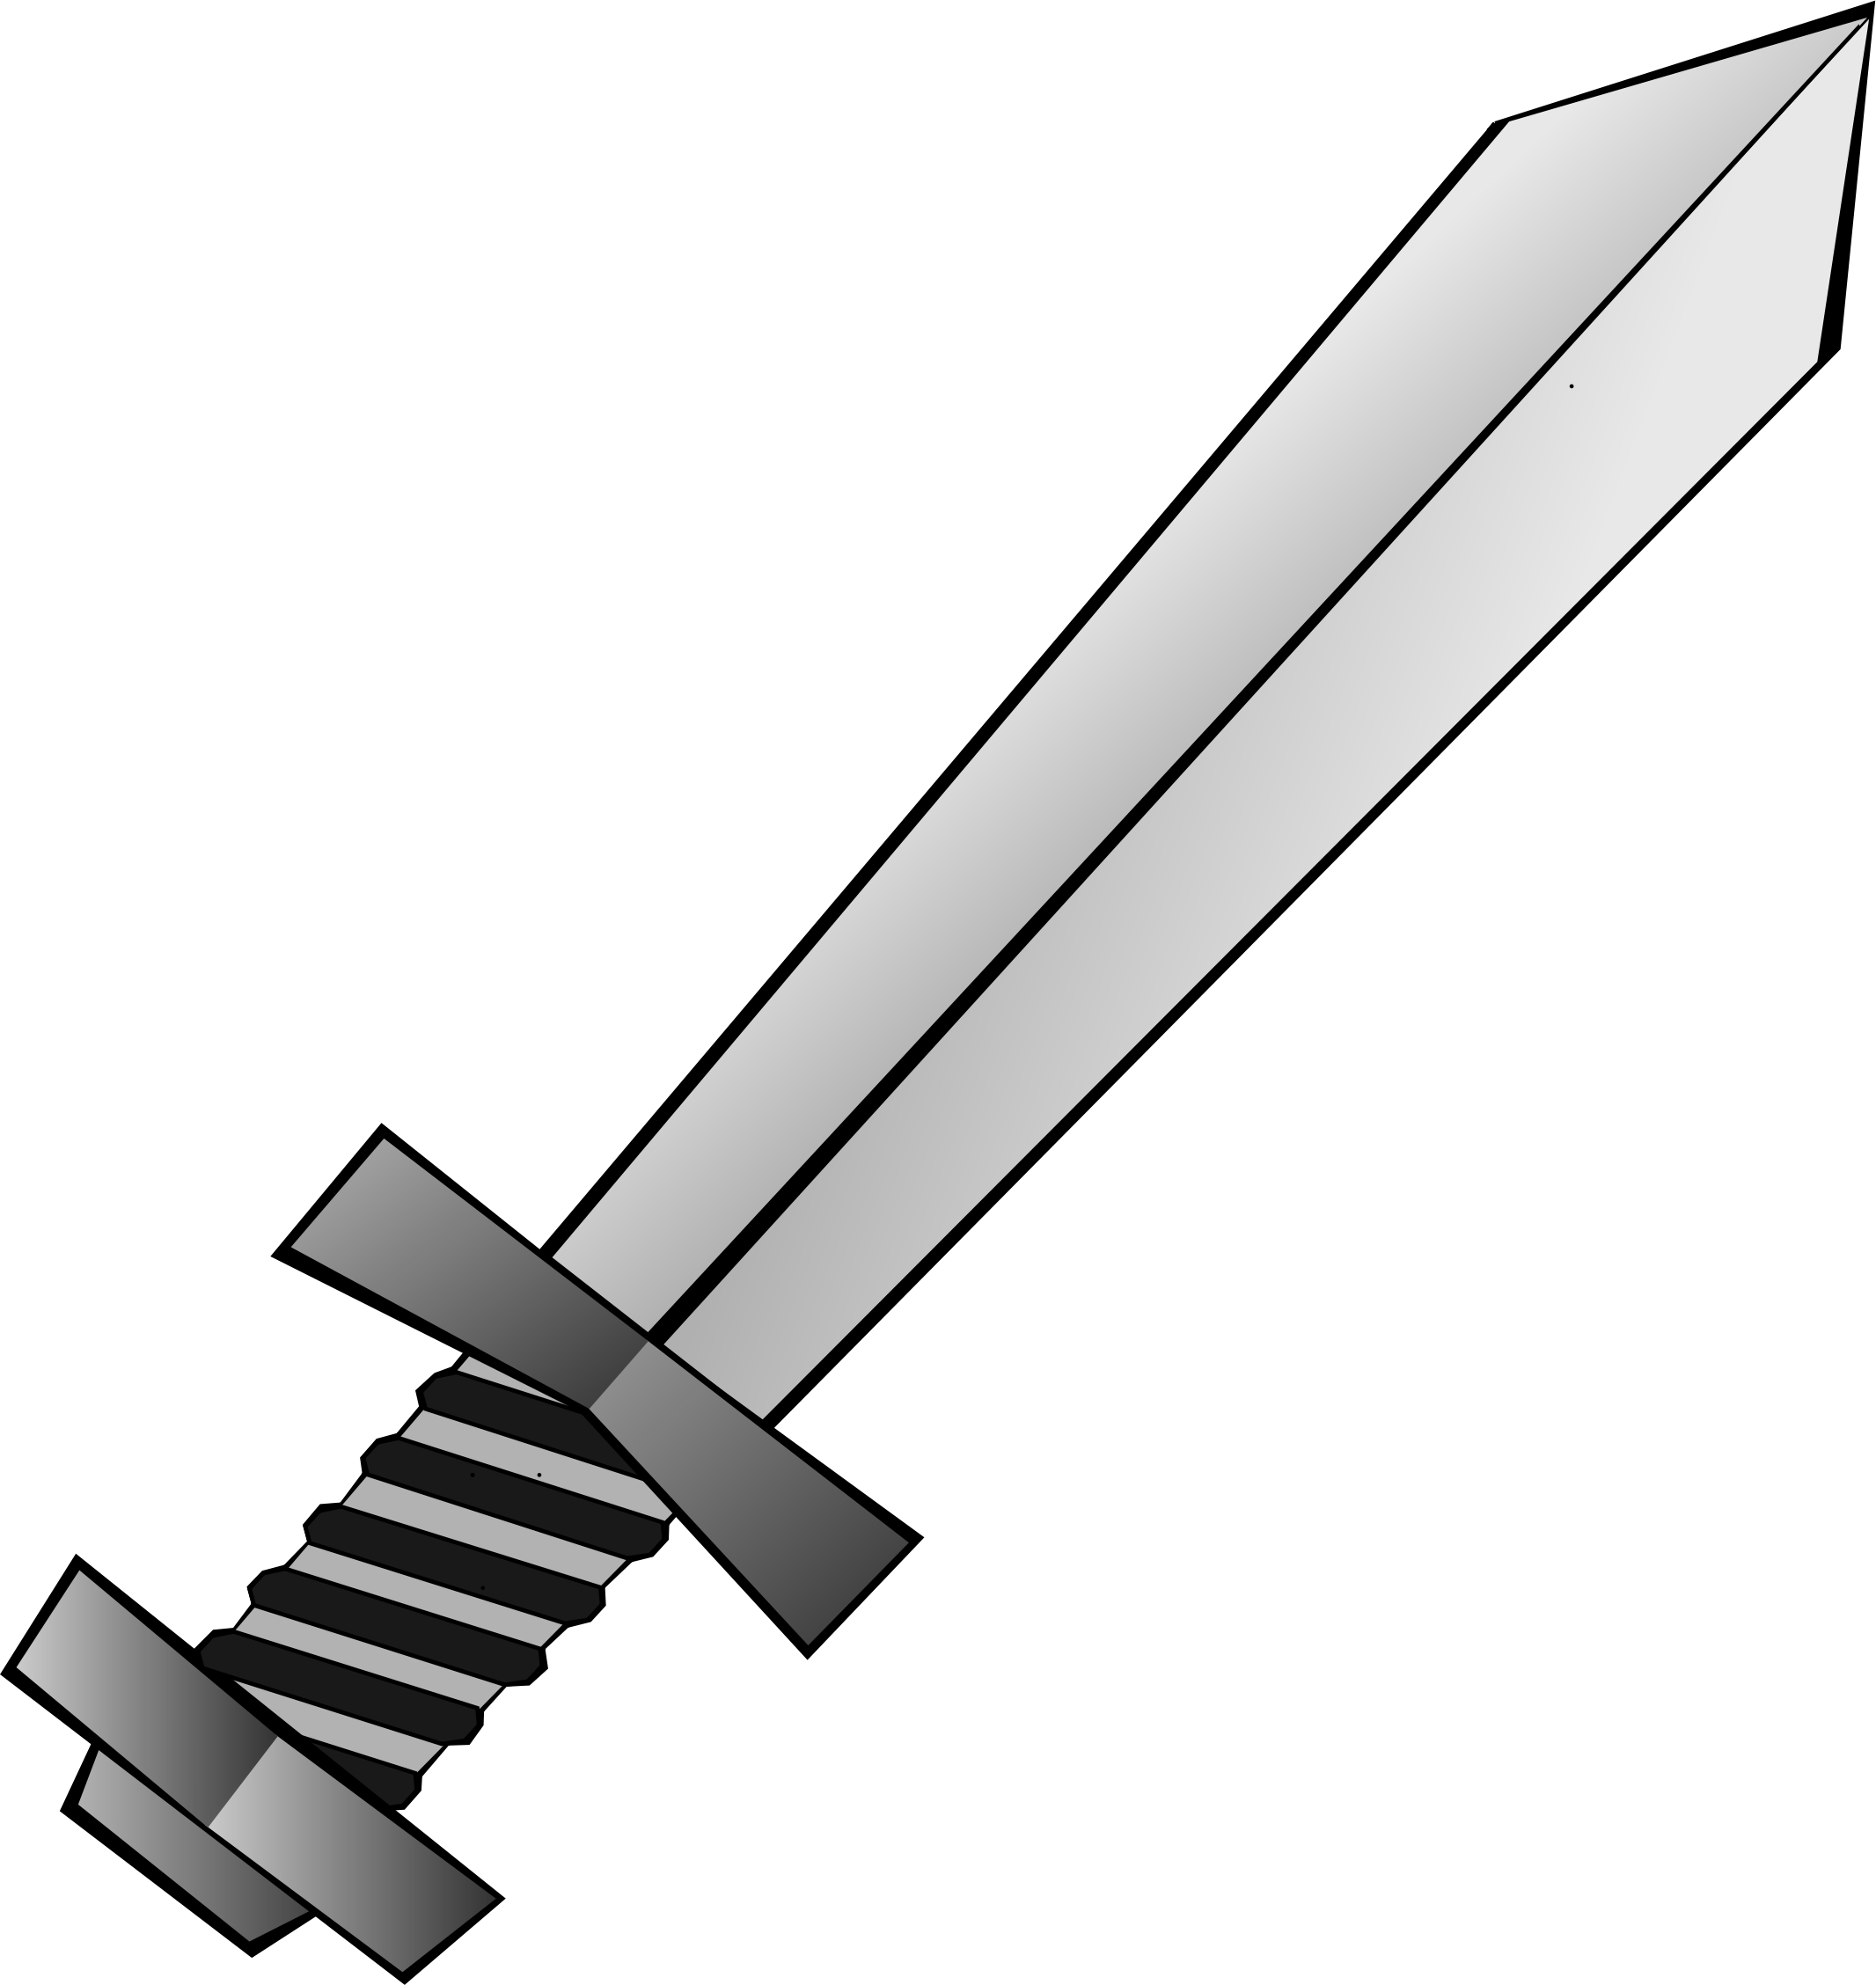 Clipart sword fancy.  collection of png